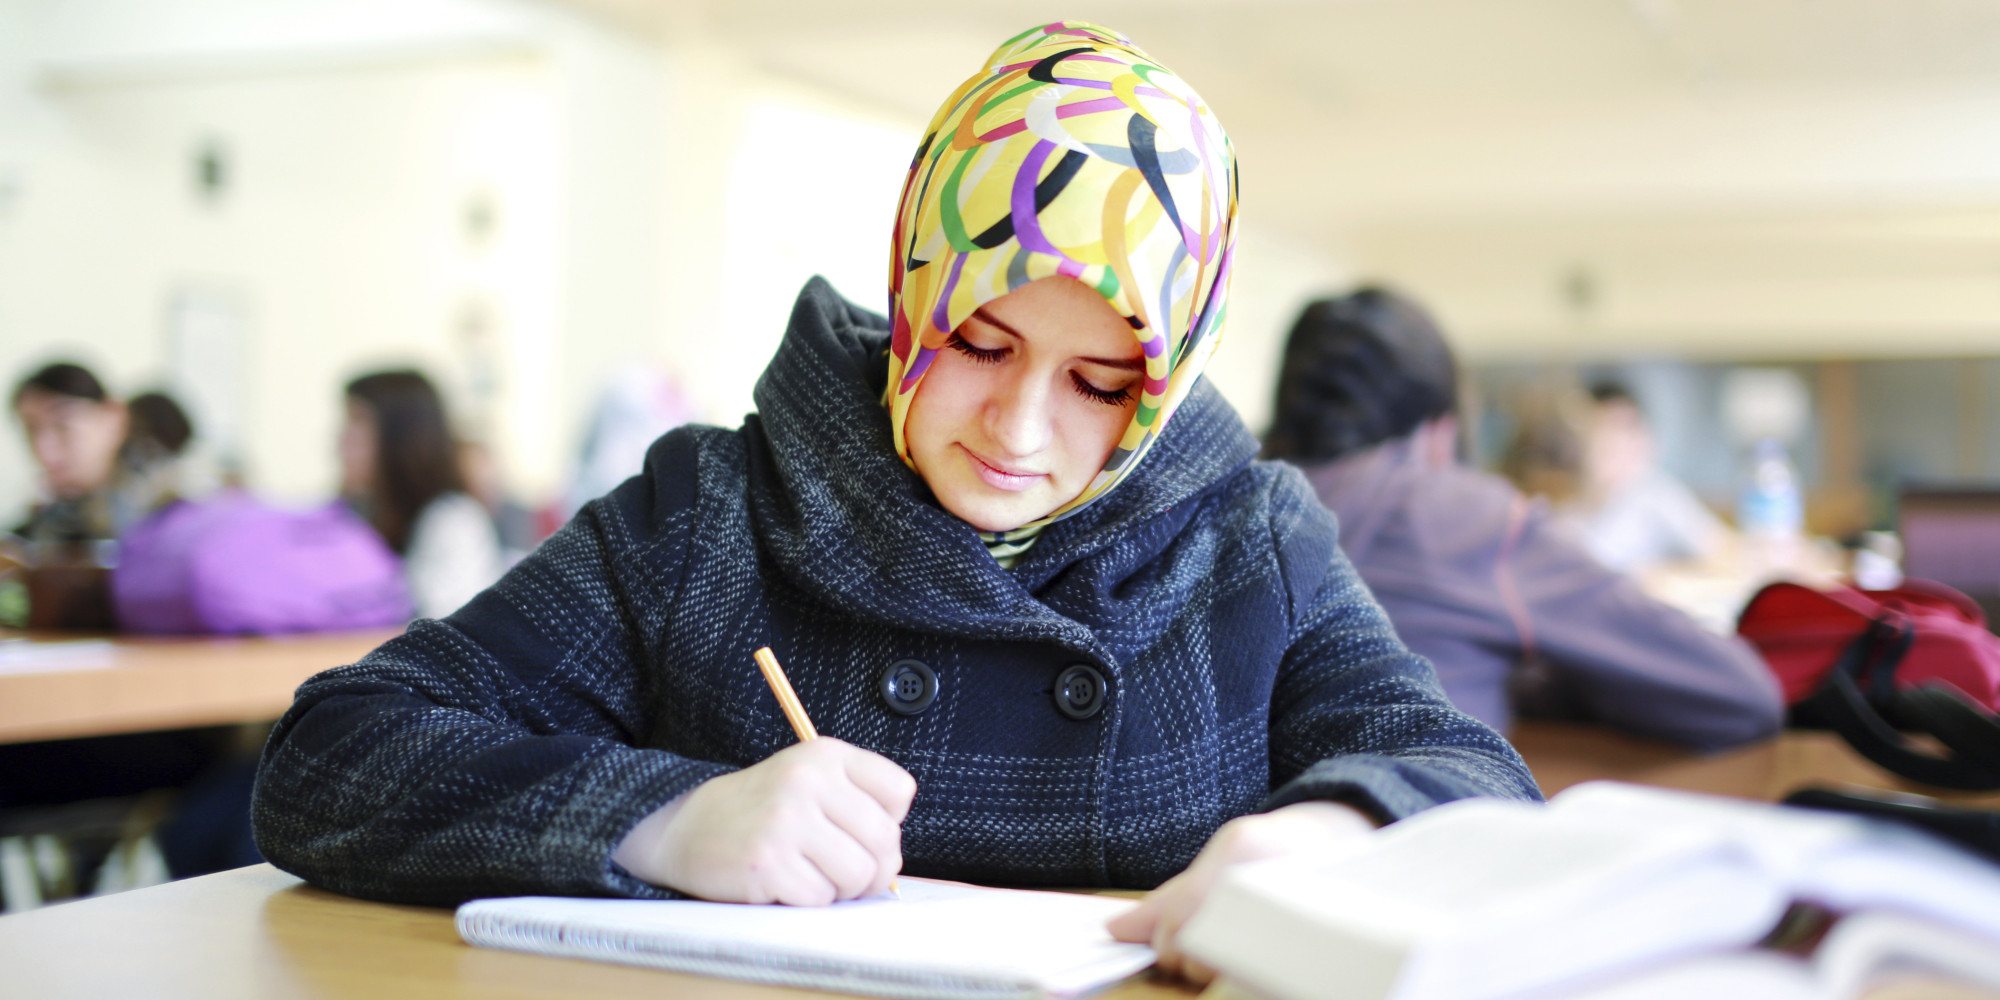 Education Science Muslim American Teens 30